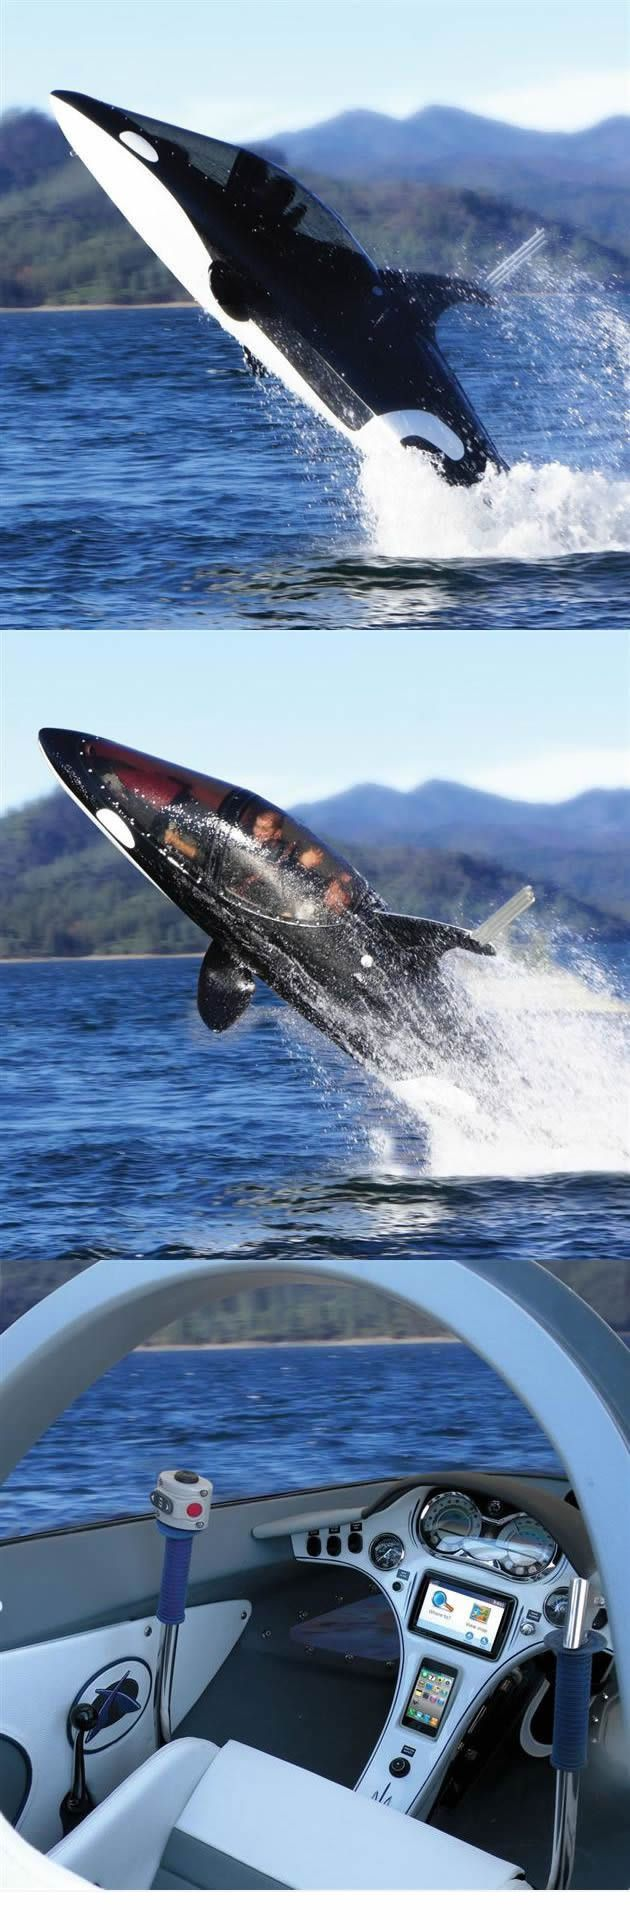 The killer whale personal submarine.